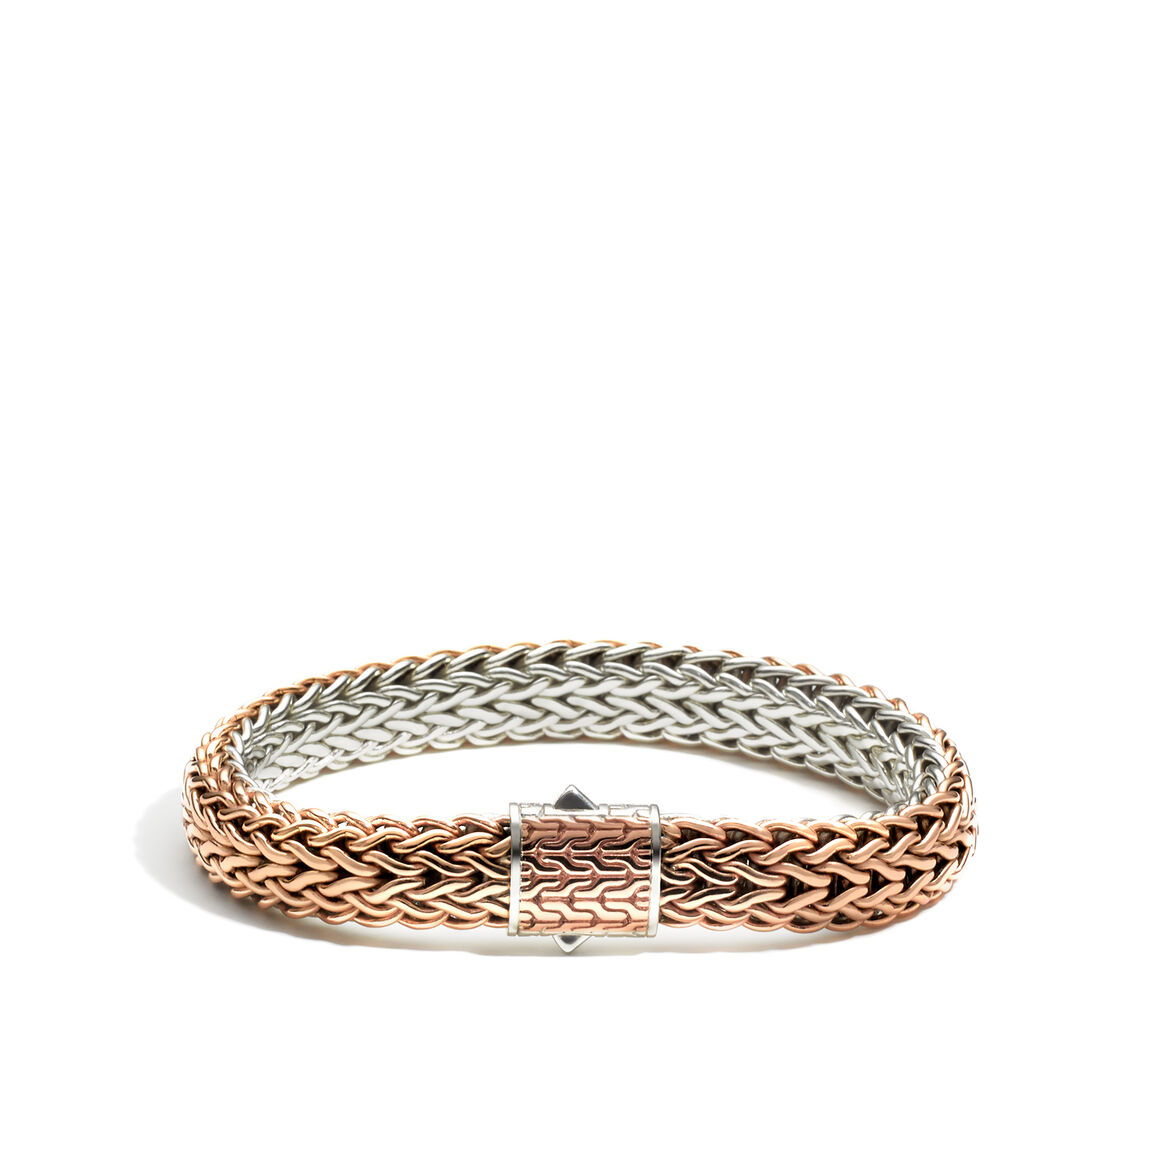 Classic Chain 11MM Reversible Bracelet in Silver and Bronze